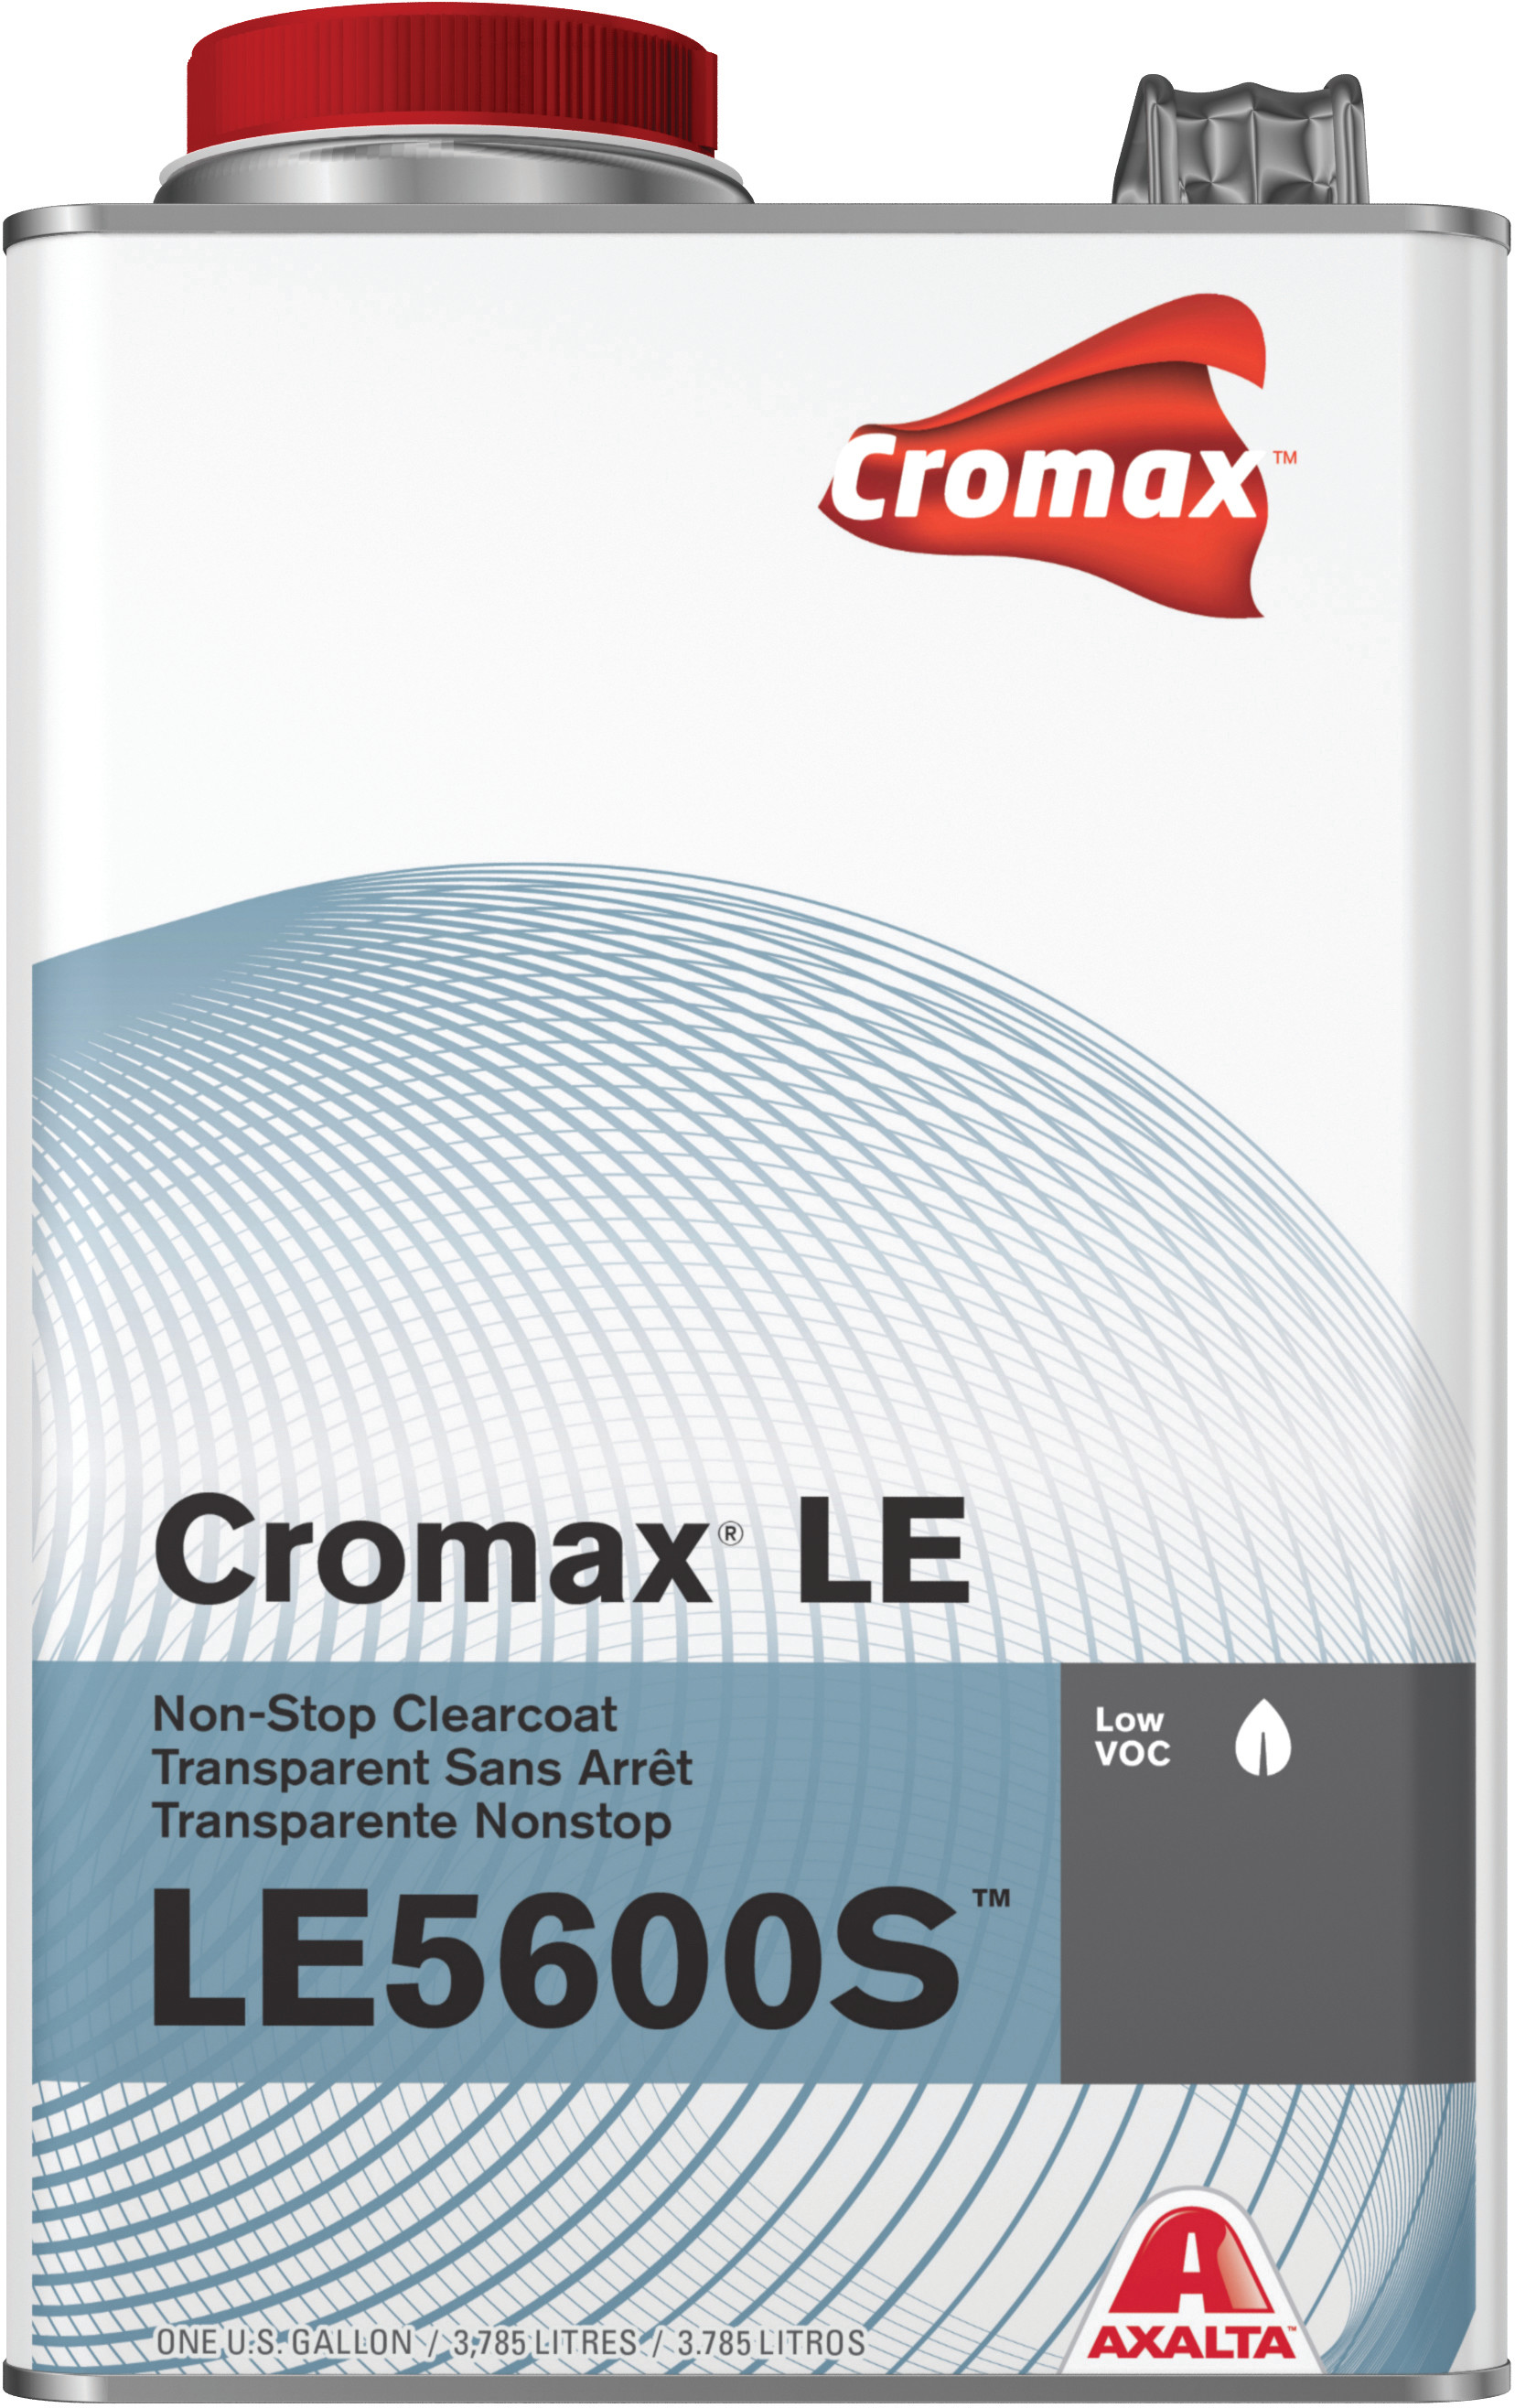 Cromax Le5600s Air Dry Productive Clearcoat Gallon